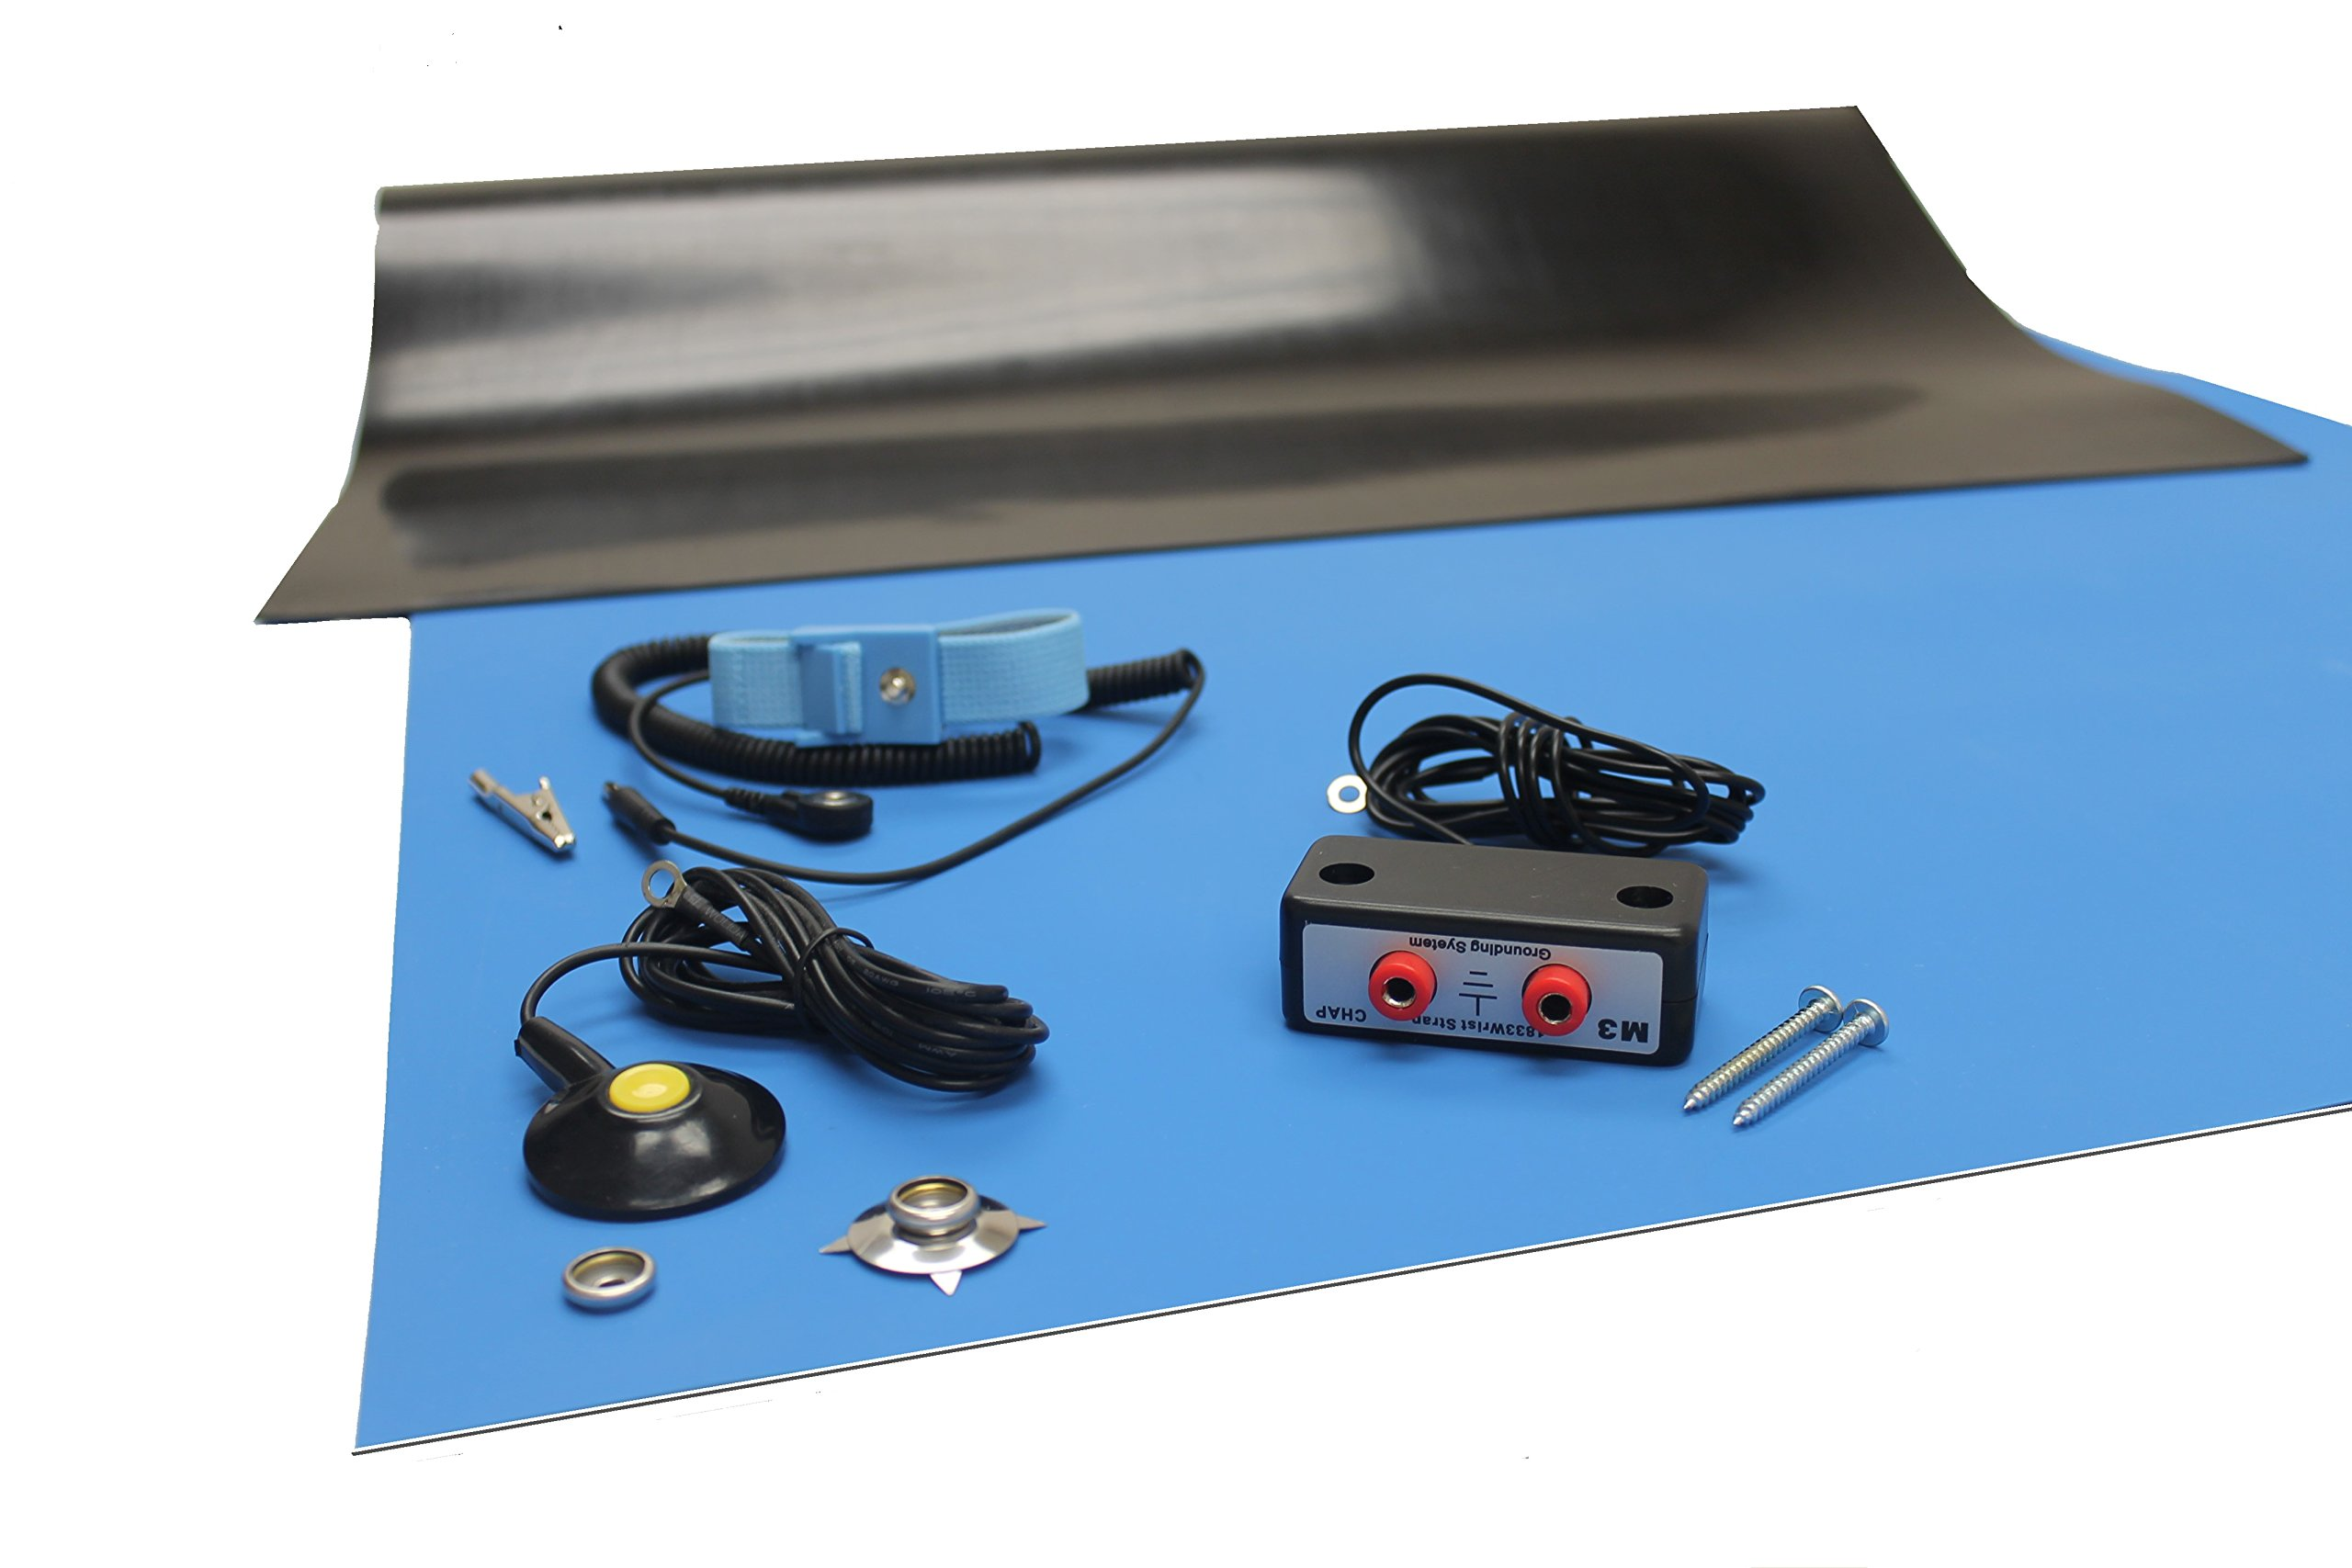 Rubber ESD Anti-Static HIGH Temperature Soldering MAT KIT-30'' X 60'' (2.5'x 5') - 0.08'' Thick- with Dual Bench and Wrist Strap-Blue